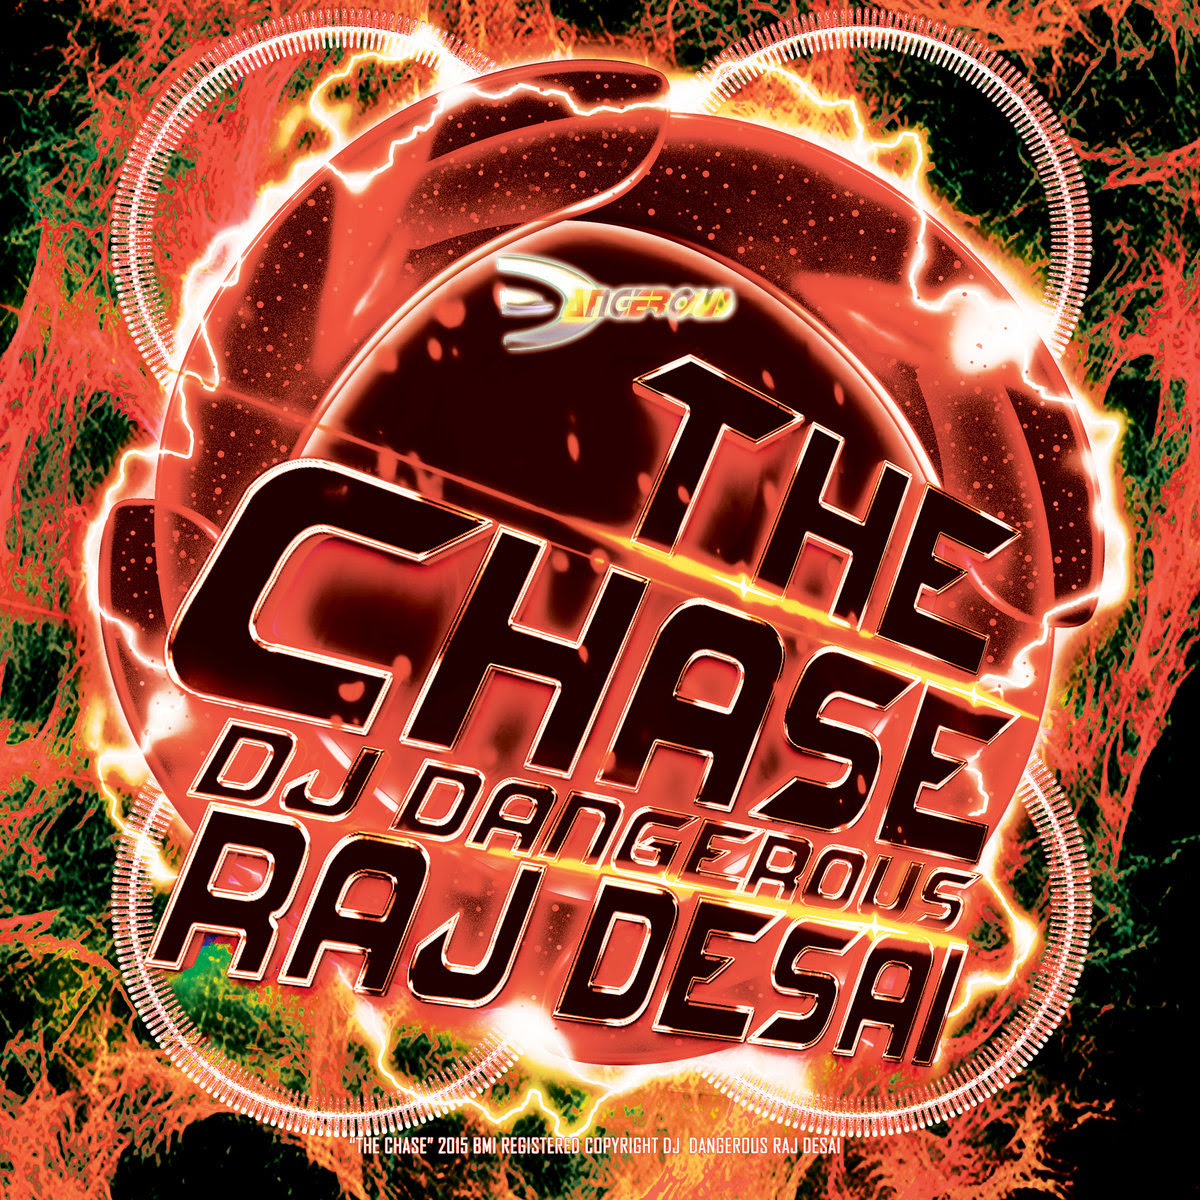 DJ Dangerous Raj Desai - The Chase